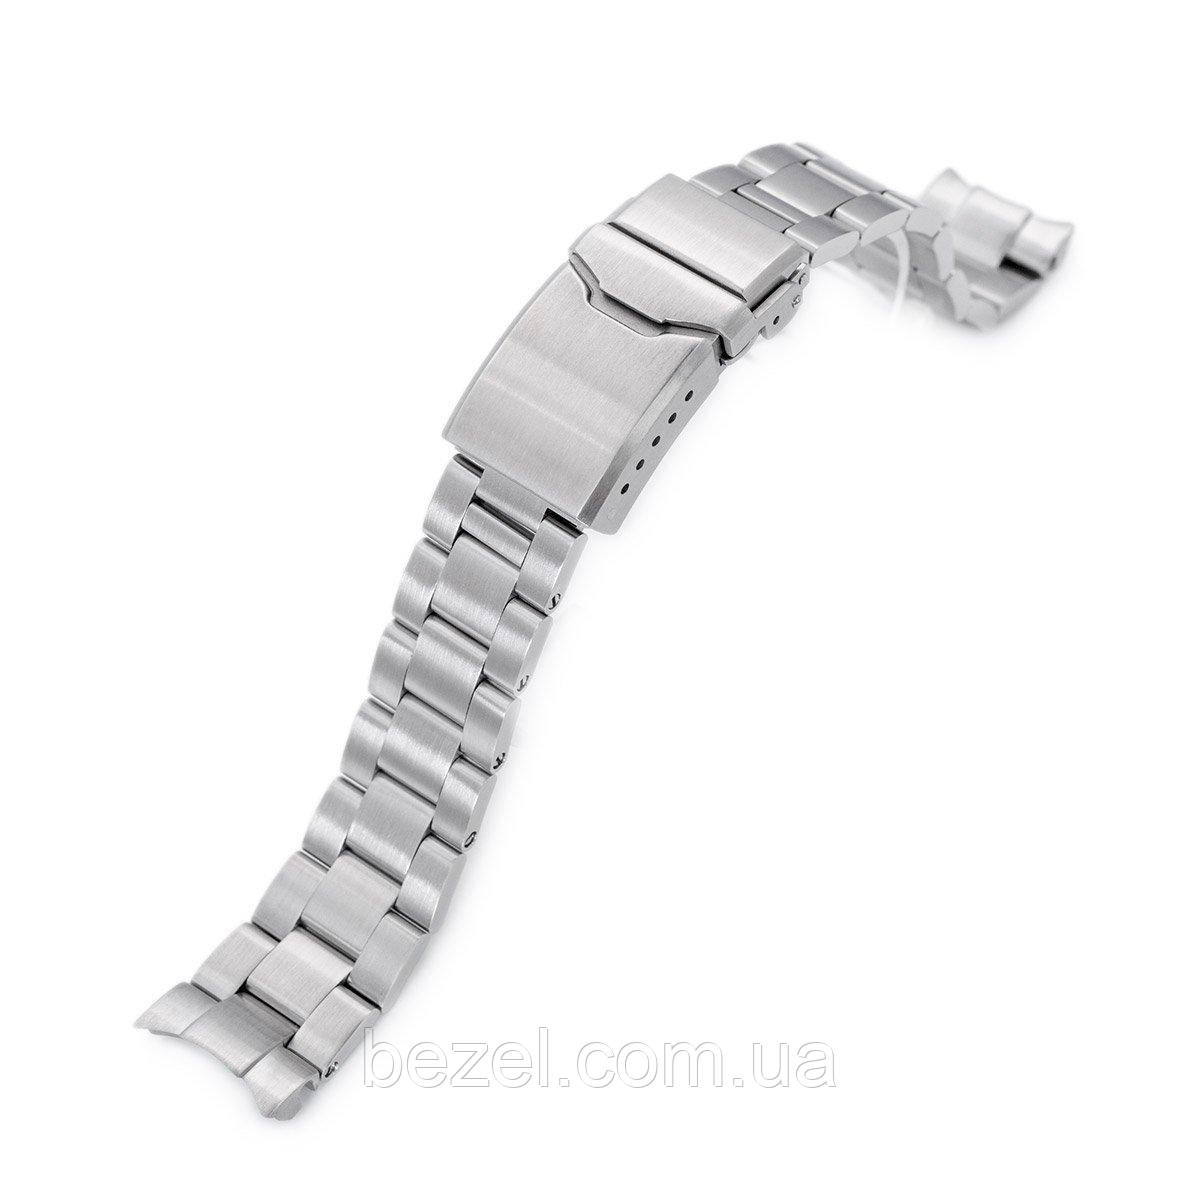 20mm Super 3D Oyster 316L Stainless Steel Watch Bracelet for Seiko Mechanical Automatic SARB033, Button Chamfer, Brushed